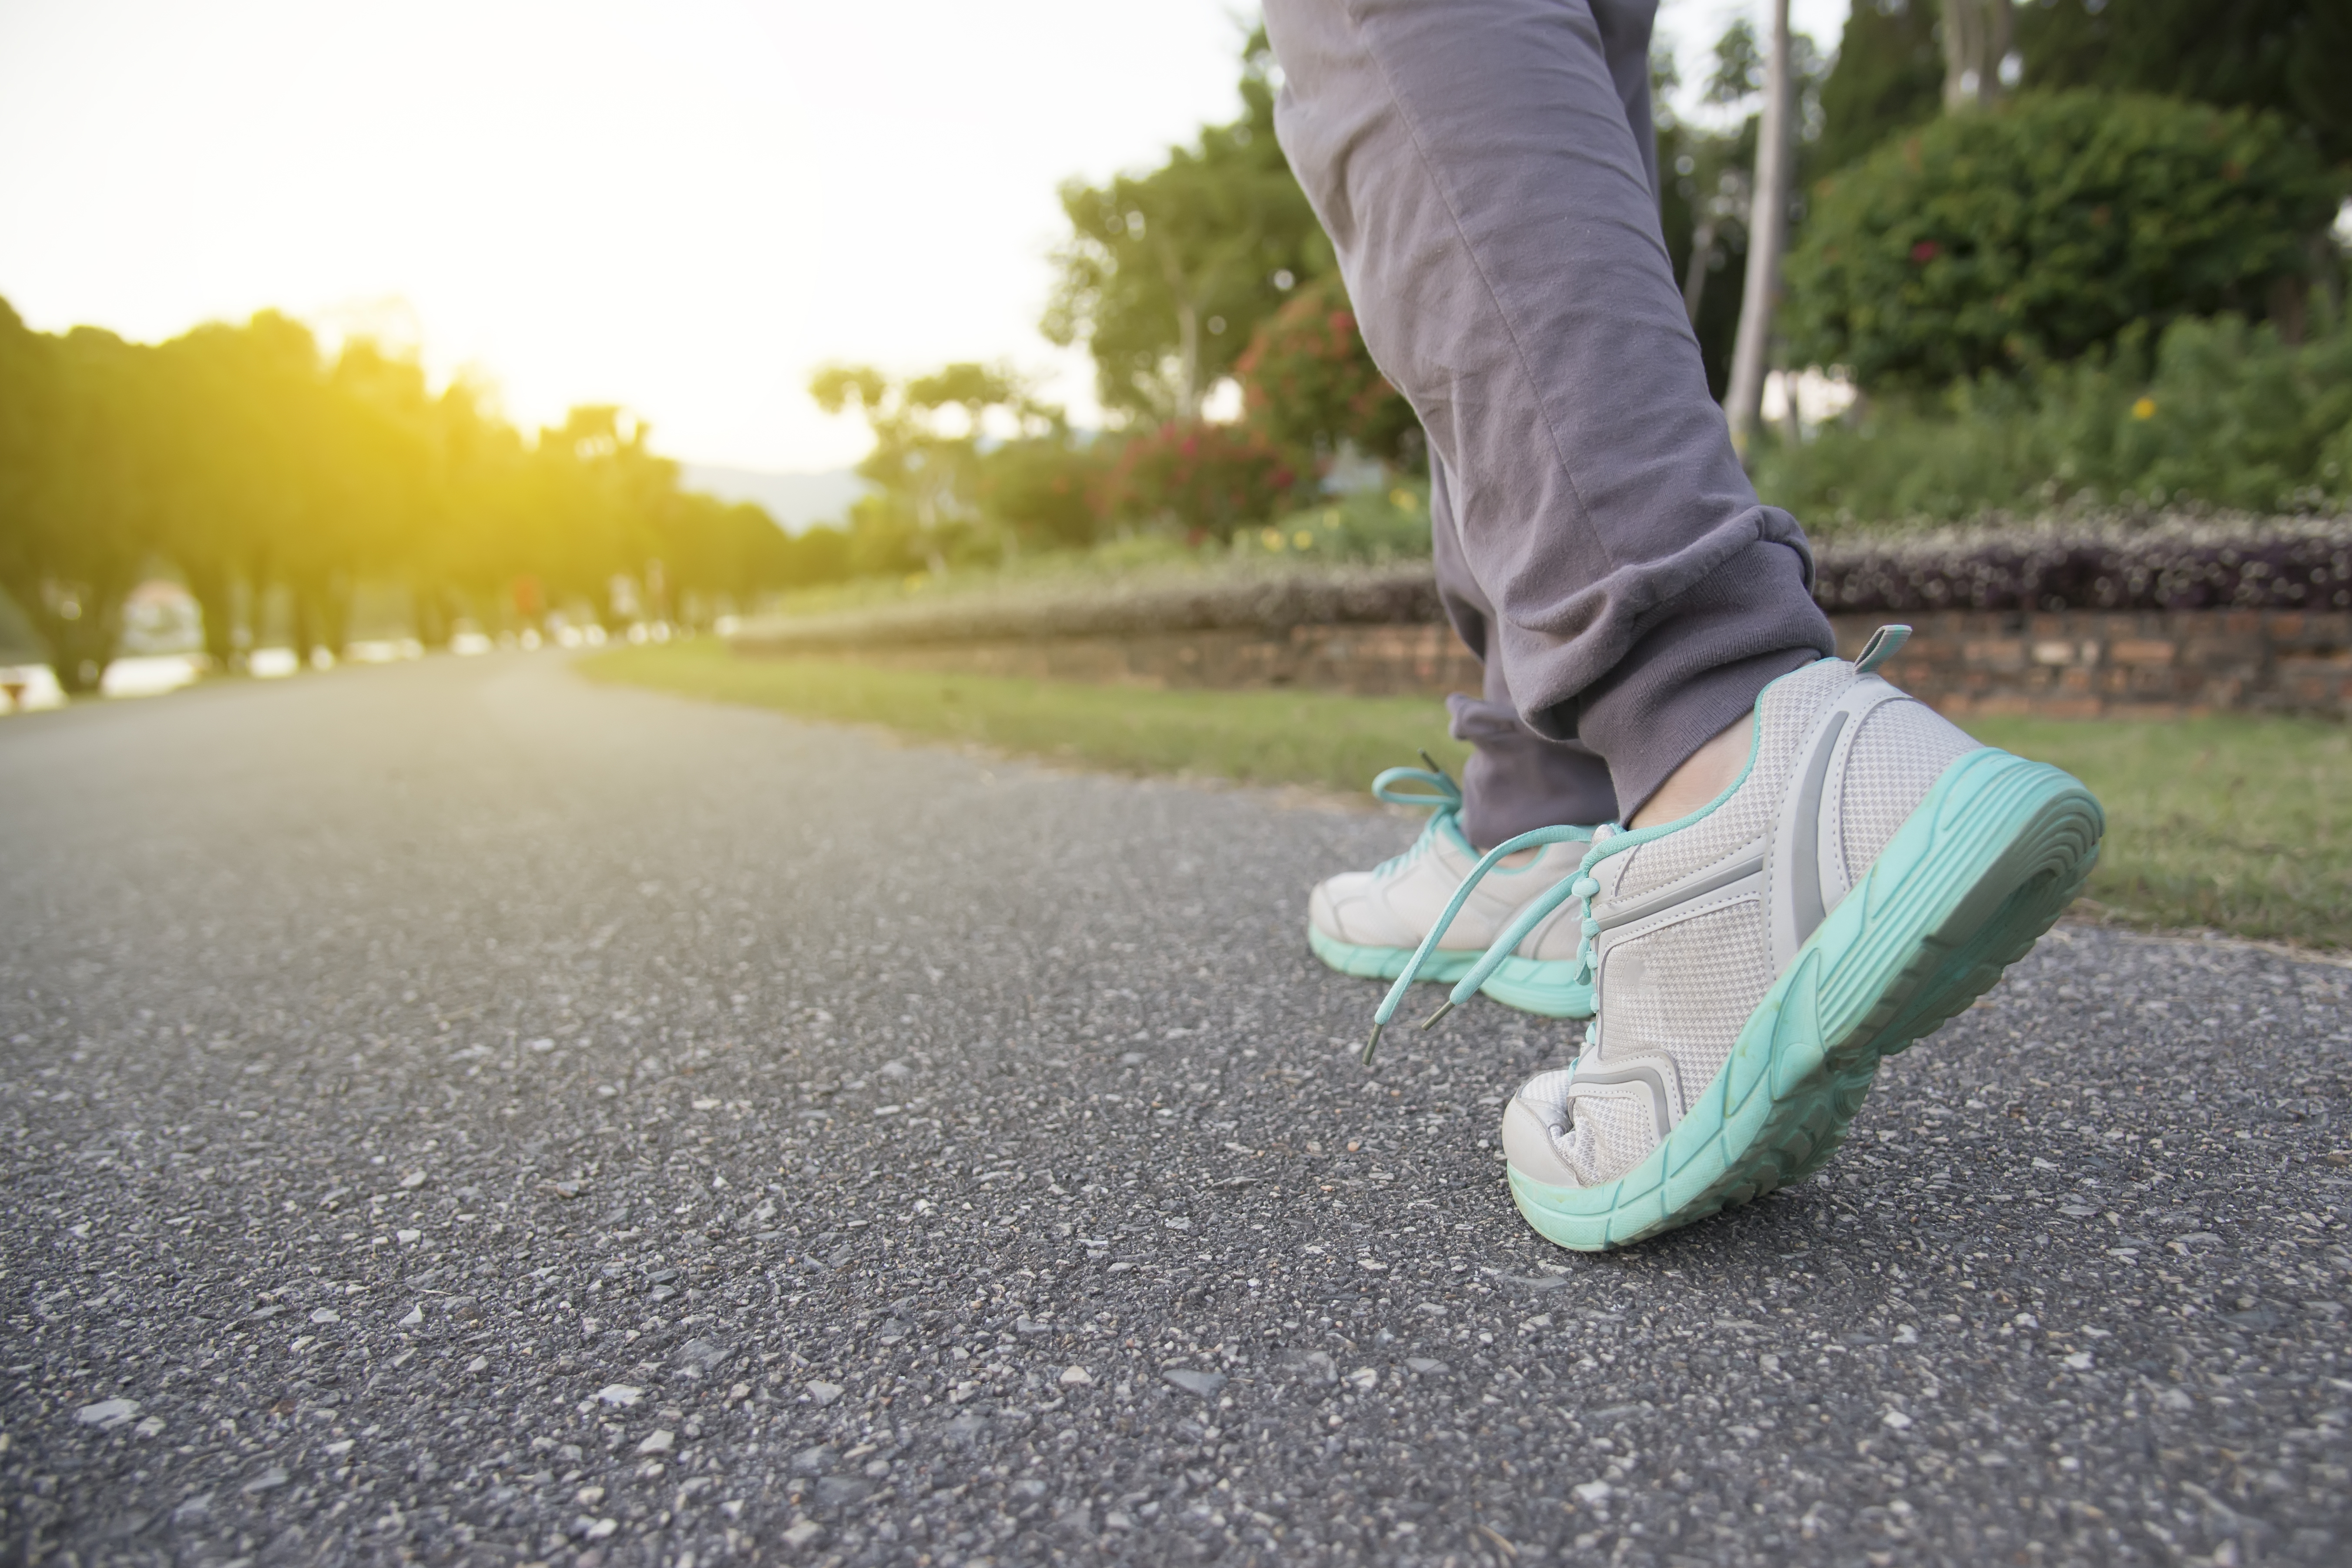 57ec86288 Most people know that physical therapists often recommend exercise as part  of their treatment. What most people don t realize is how simple that  exercise ...